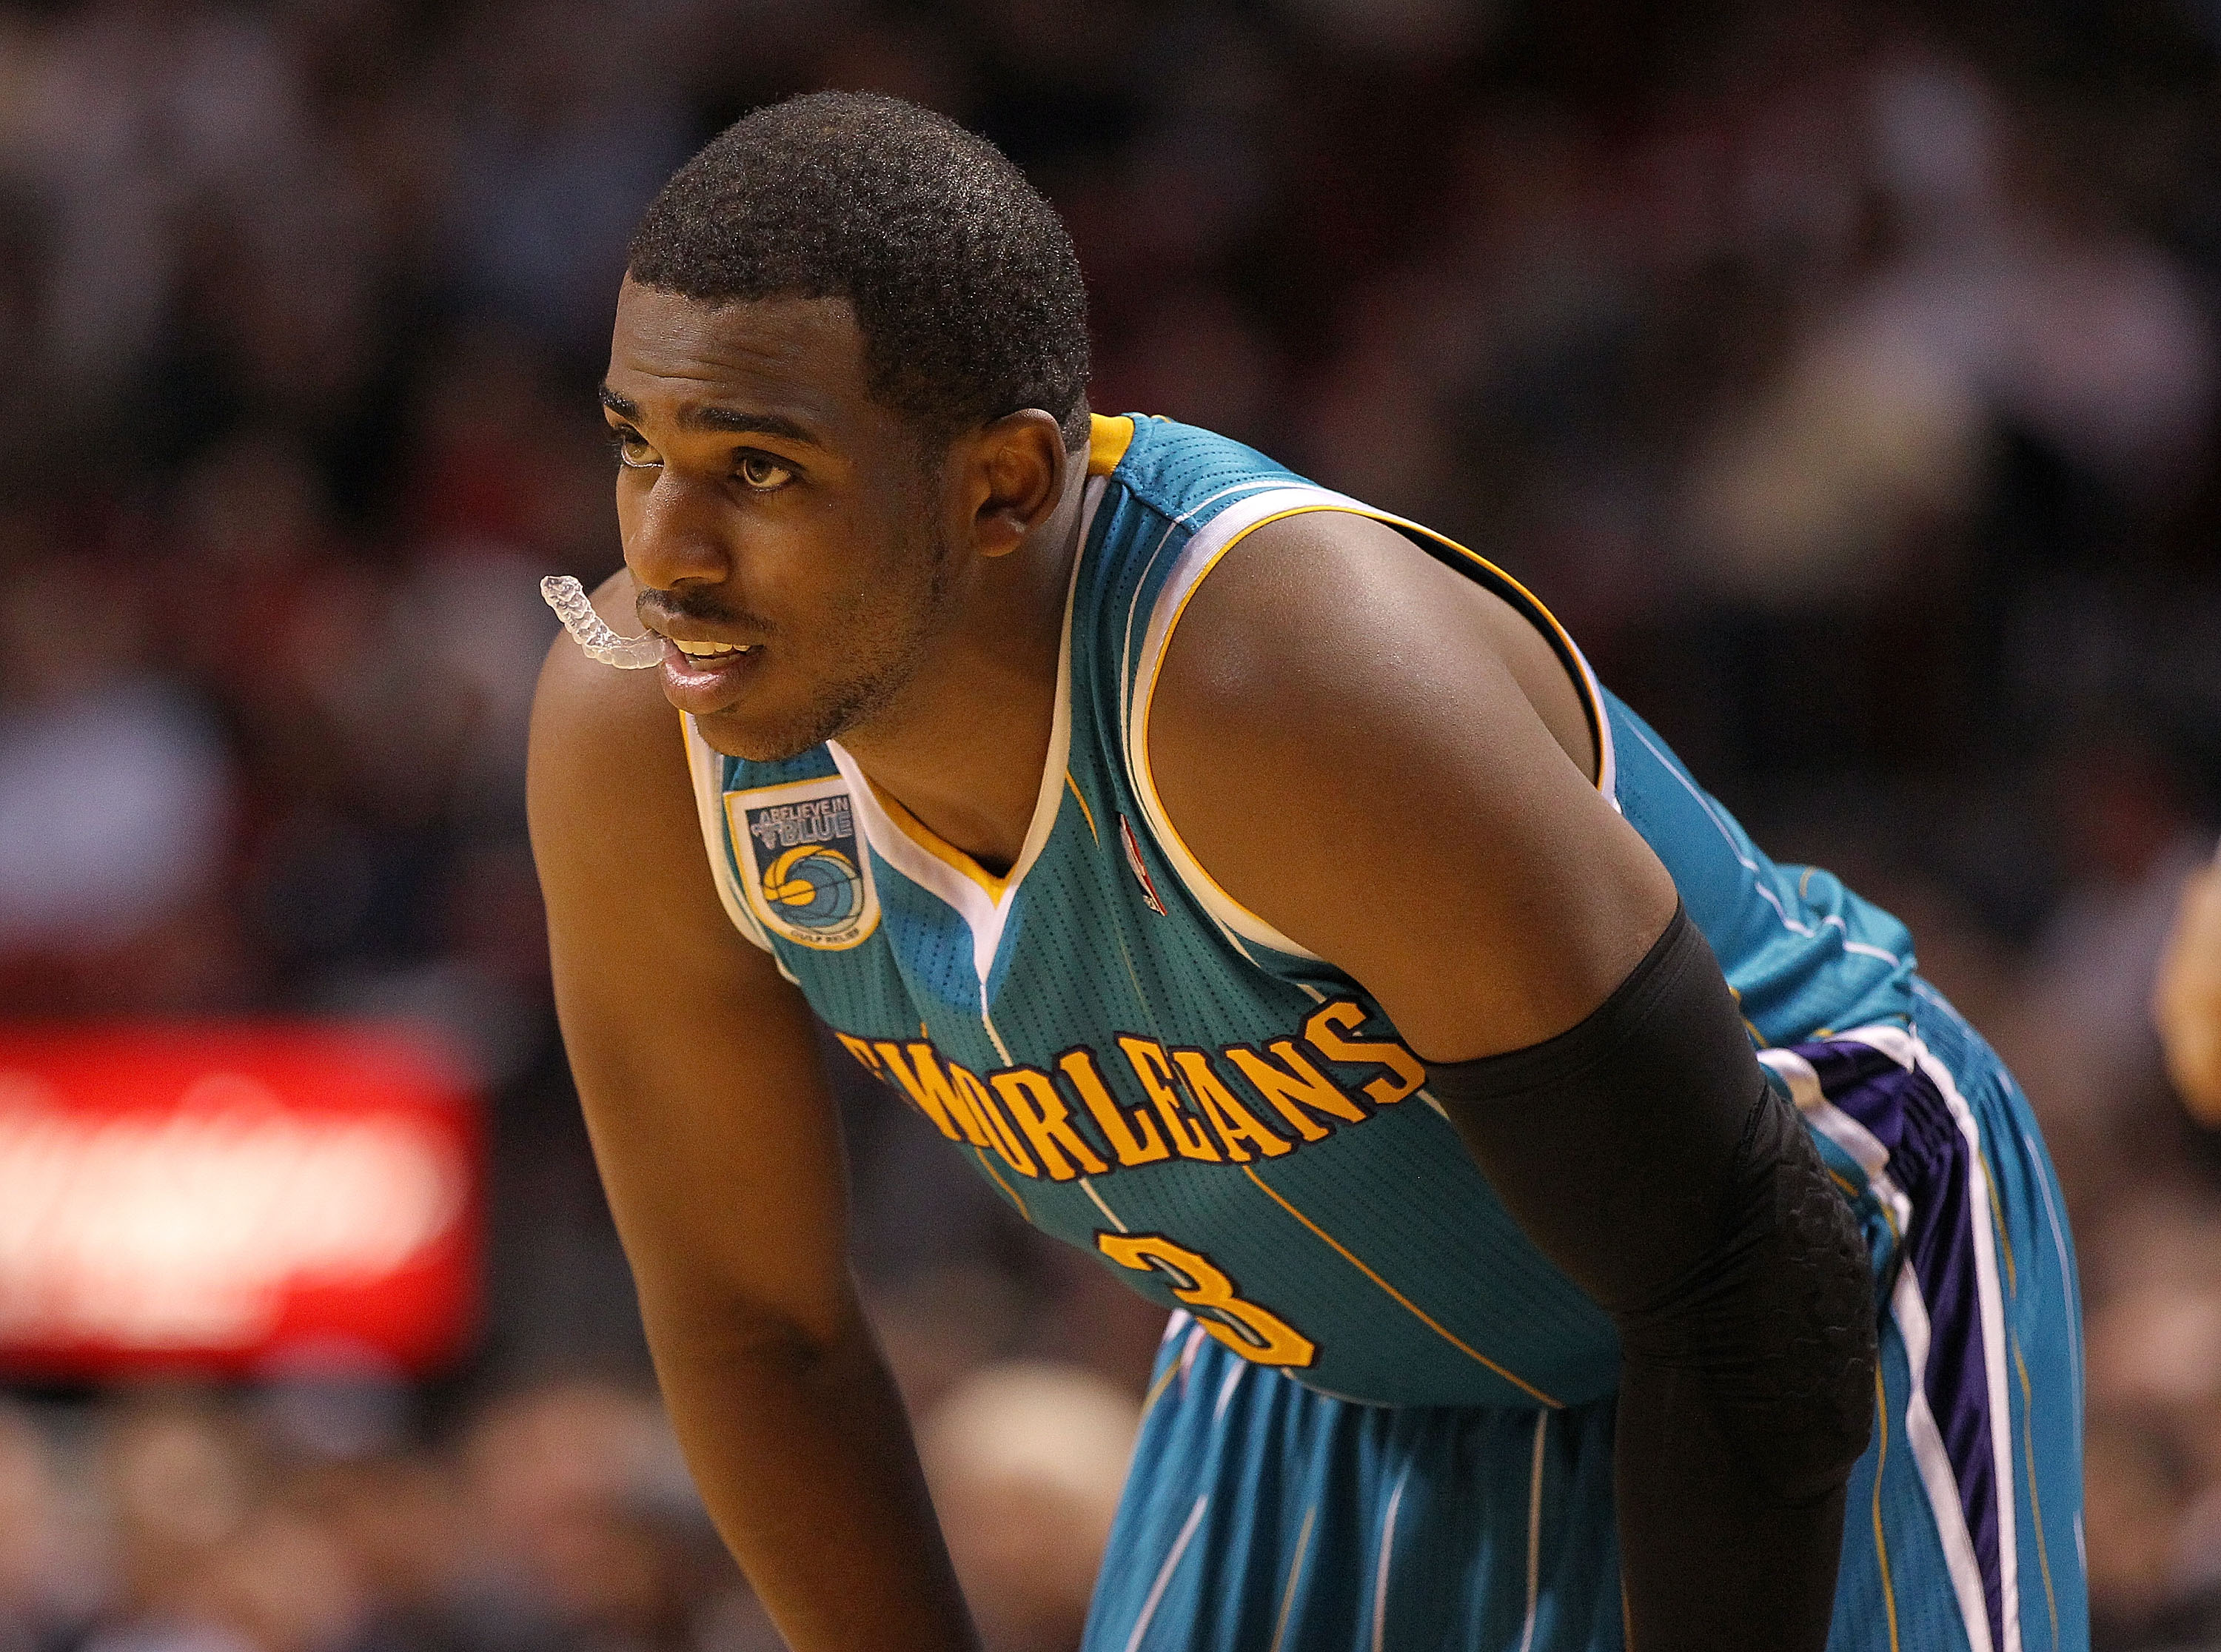 MIAMI, FL - DECEMBER 13: Chris Paul #3 of the New Orleans Hornets waits during a foul shot during a game against the Miami Heat at American Airlines Arena on December 13, 2010 in Miami, Florida. NOTE TO USER: User expressly acknowledges and agrees that, b